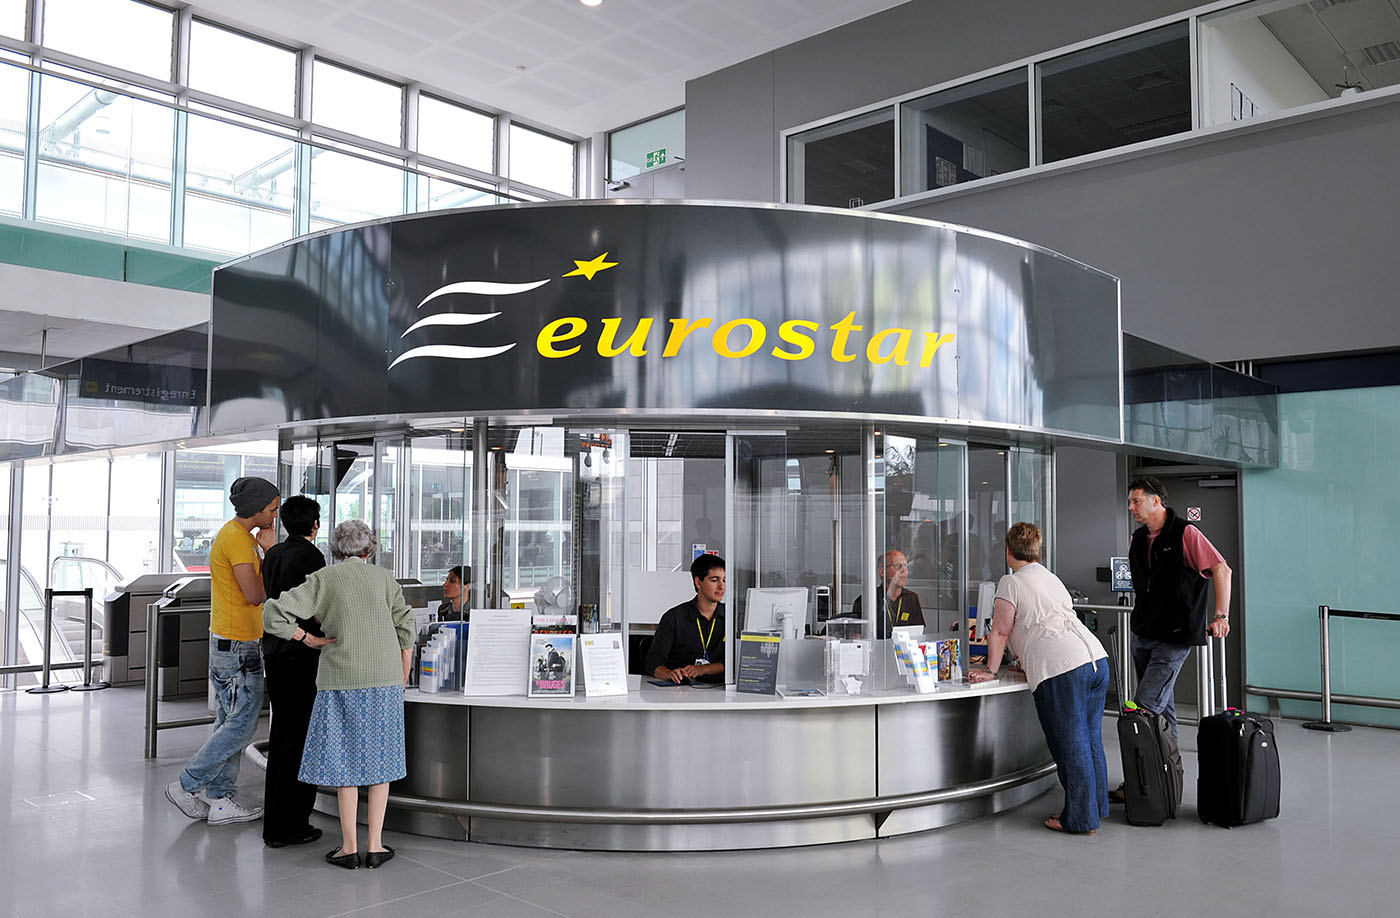 The Eurostar customer information desk at Ebbsfleet International train station in North Kent